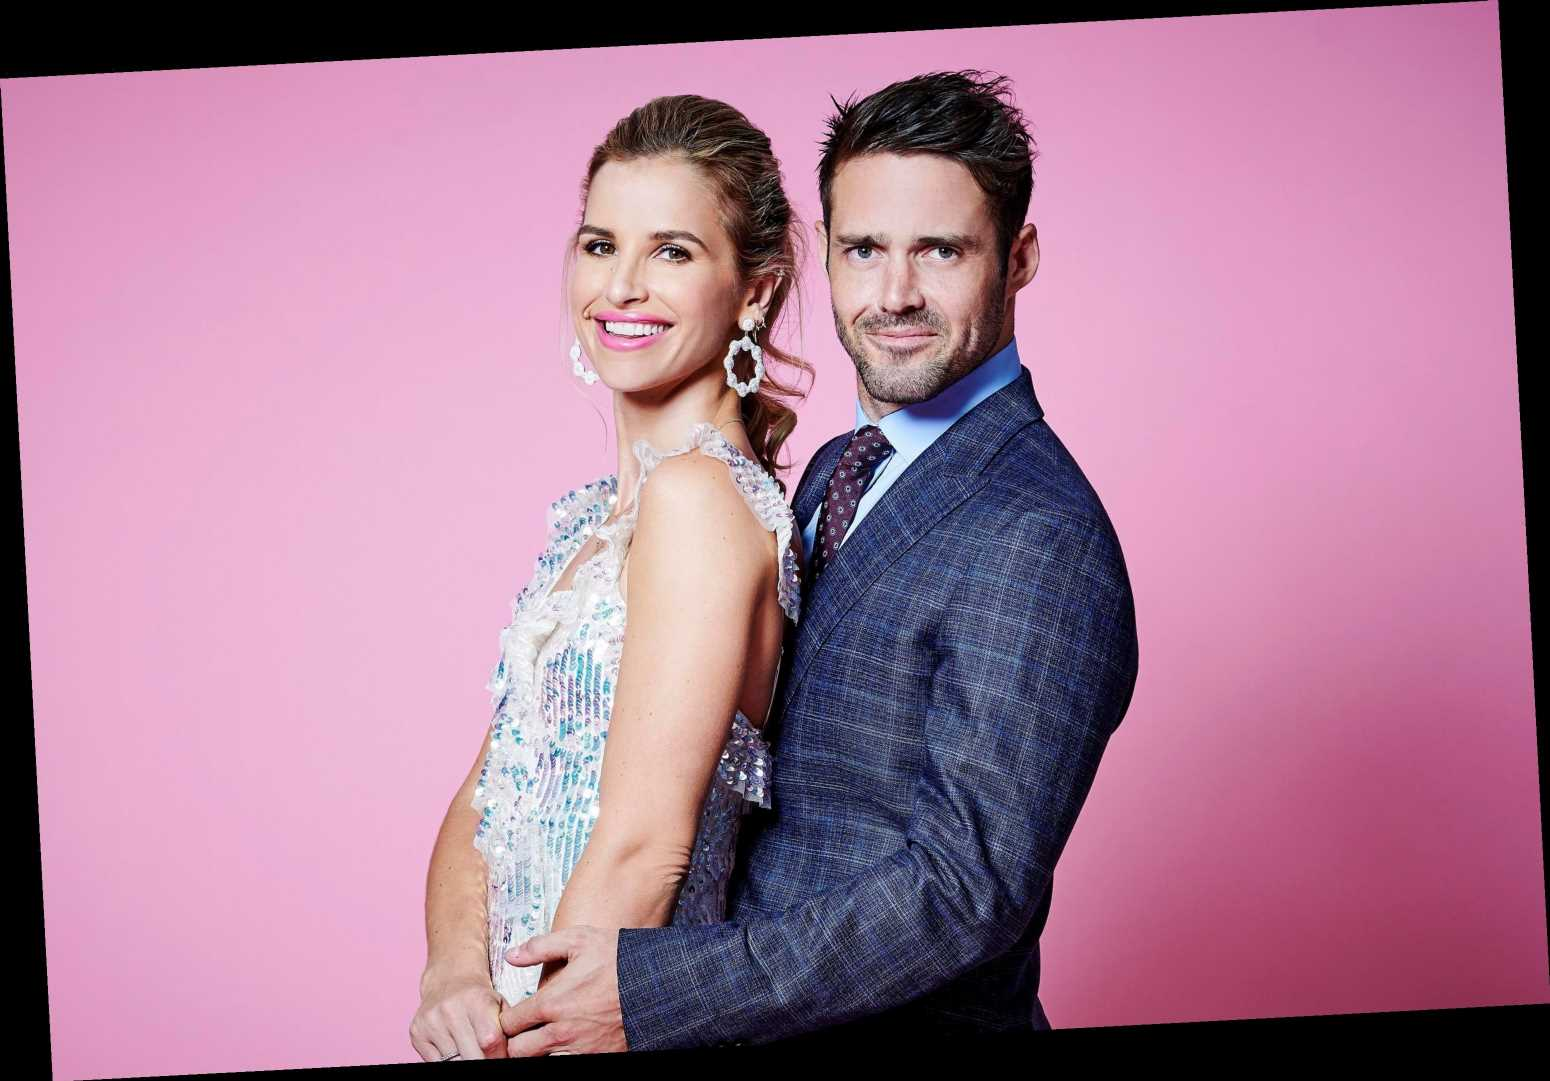 Spencer Matthews and Vogue Williams' E4 television show axed after plunging ratings – The Sun